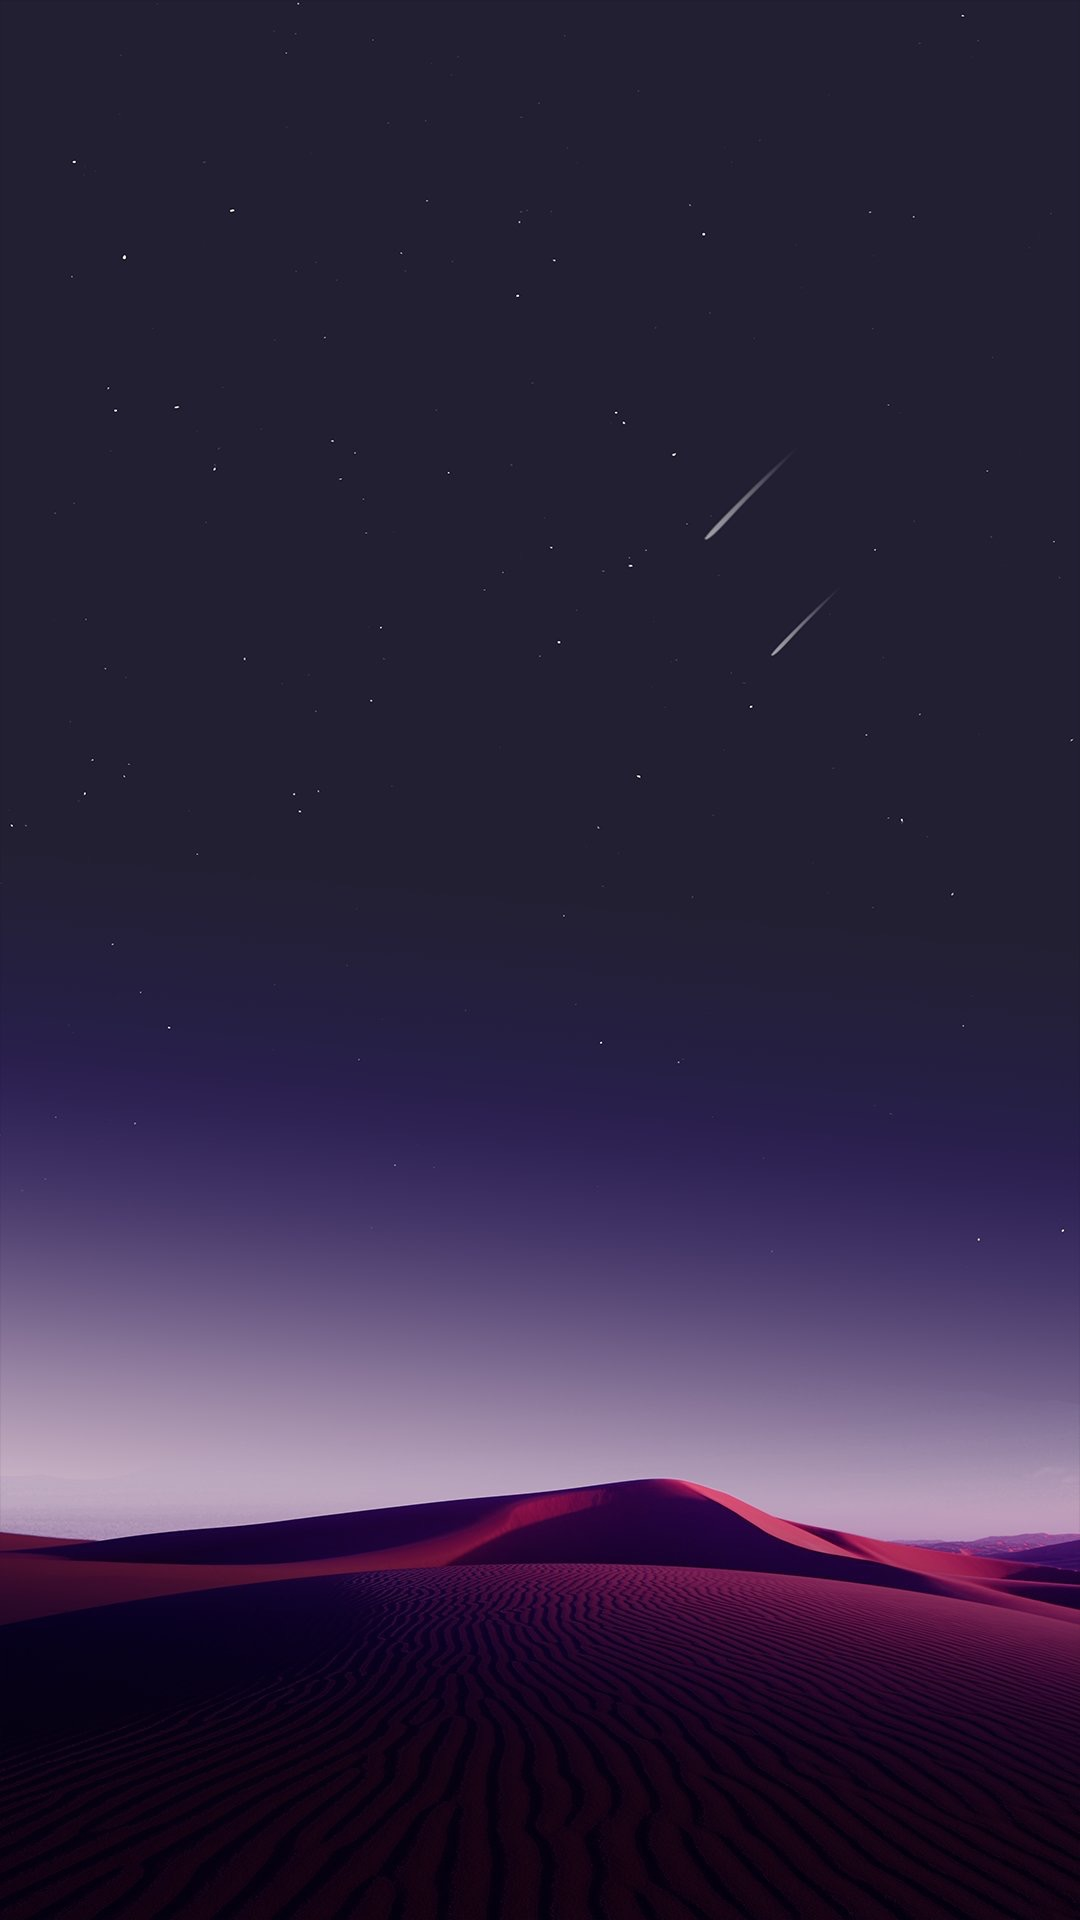 Beautiful Desktop Wallpapers With Quotes Desert Sky Shooting Stars Iphone Wallpaper Iphone Wallpapers